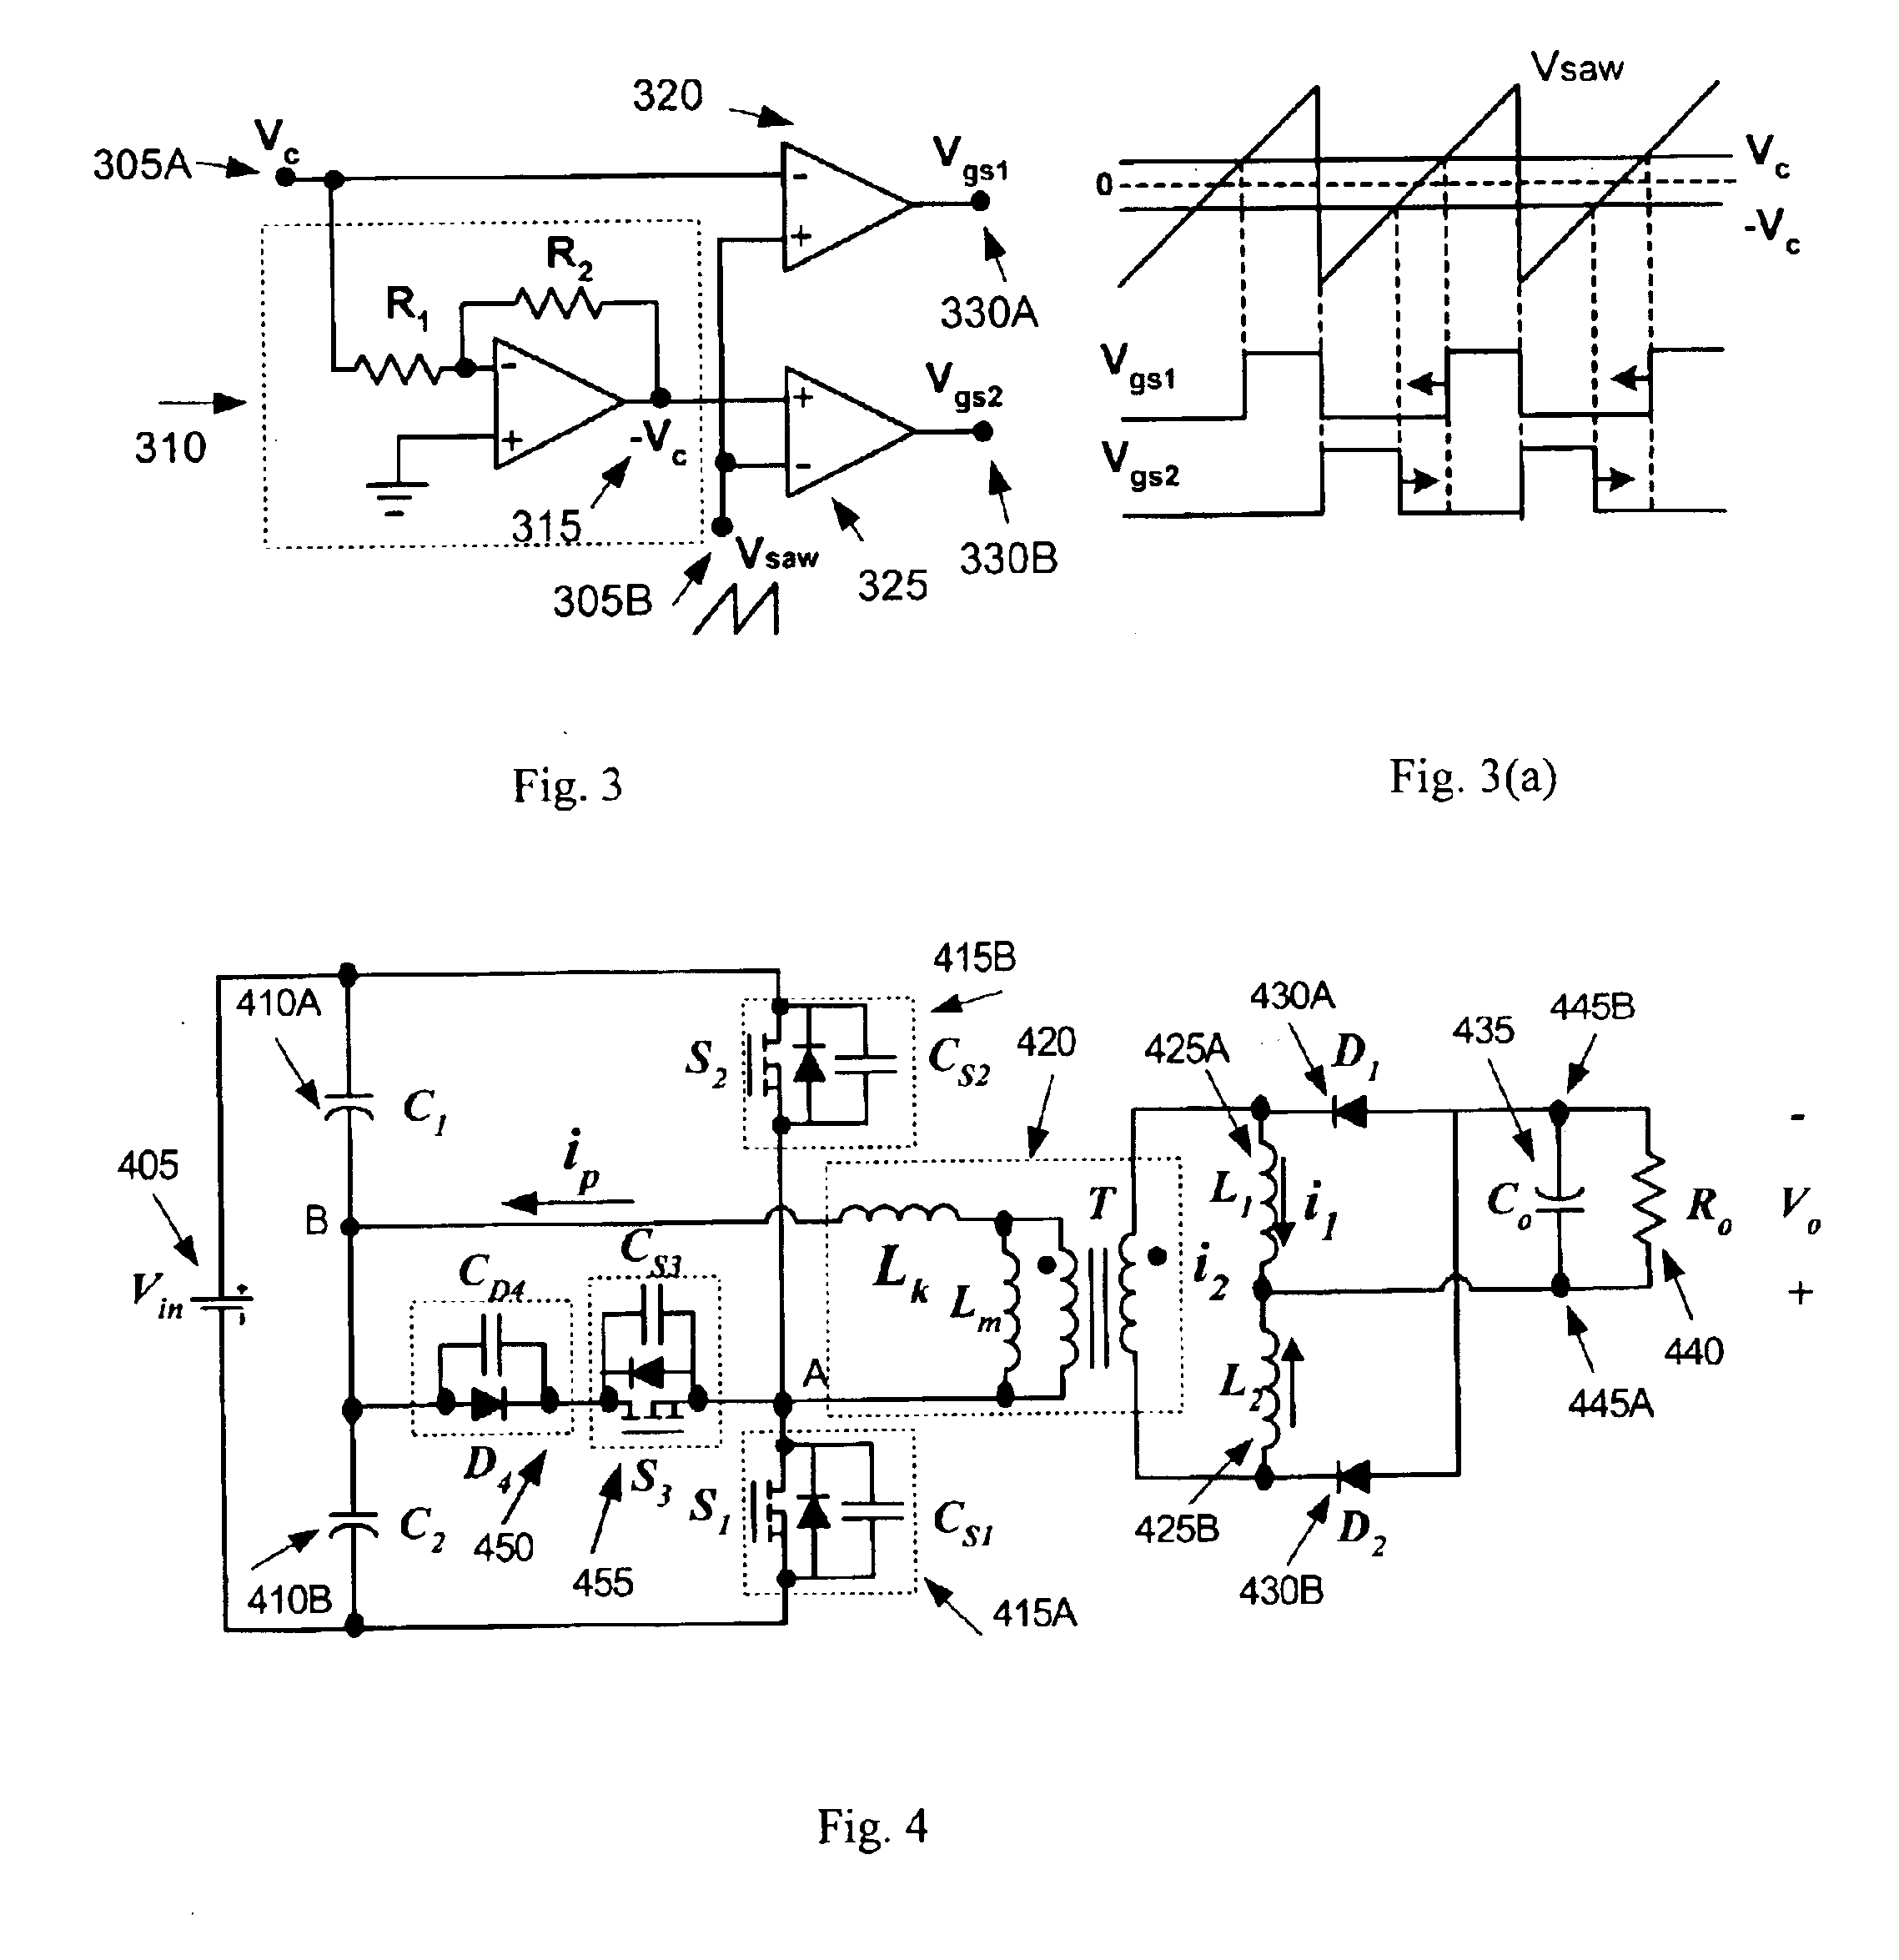 patent assignment